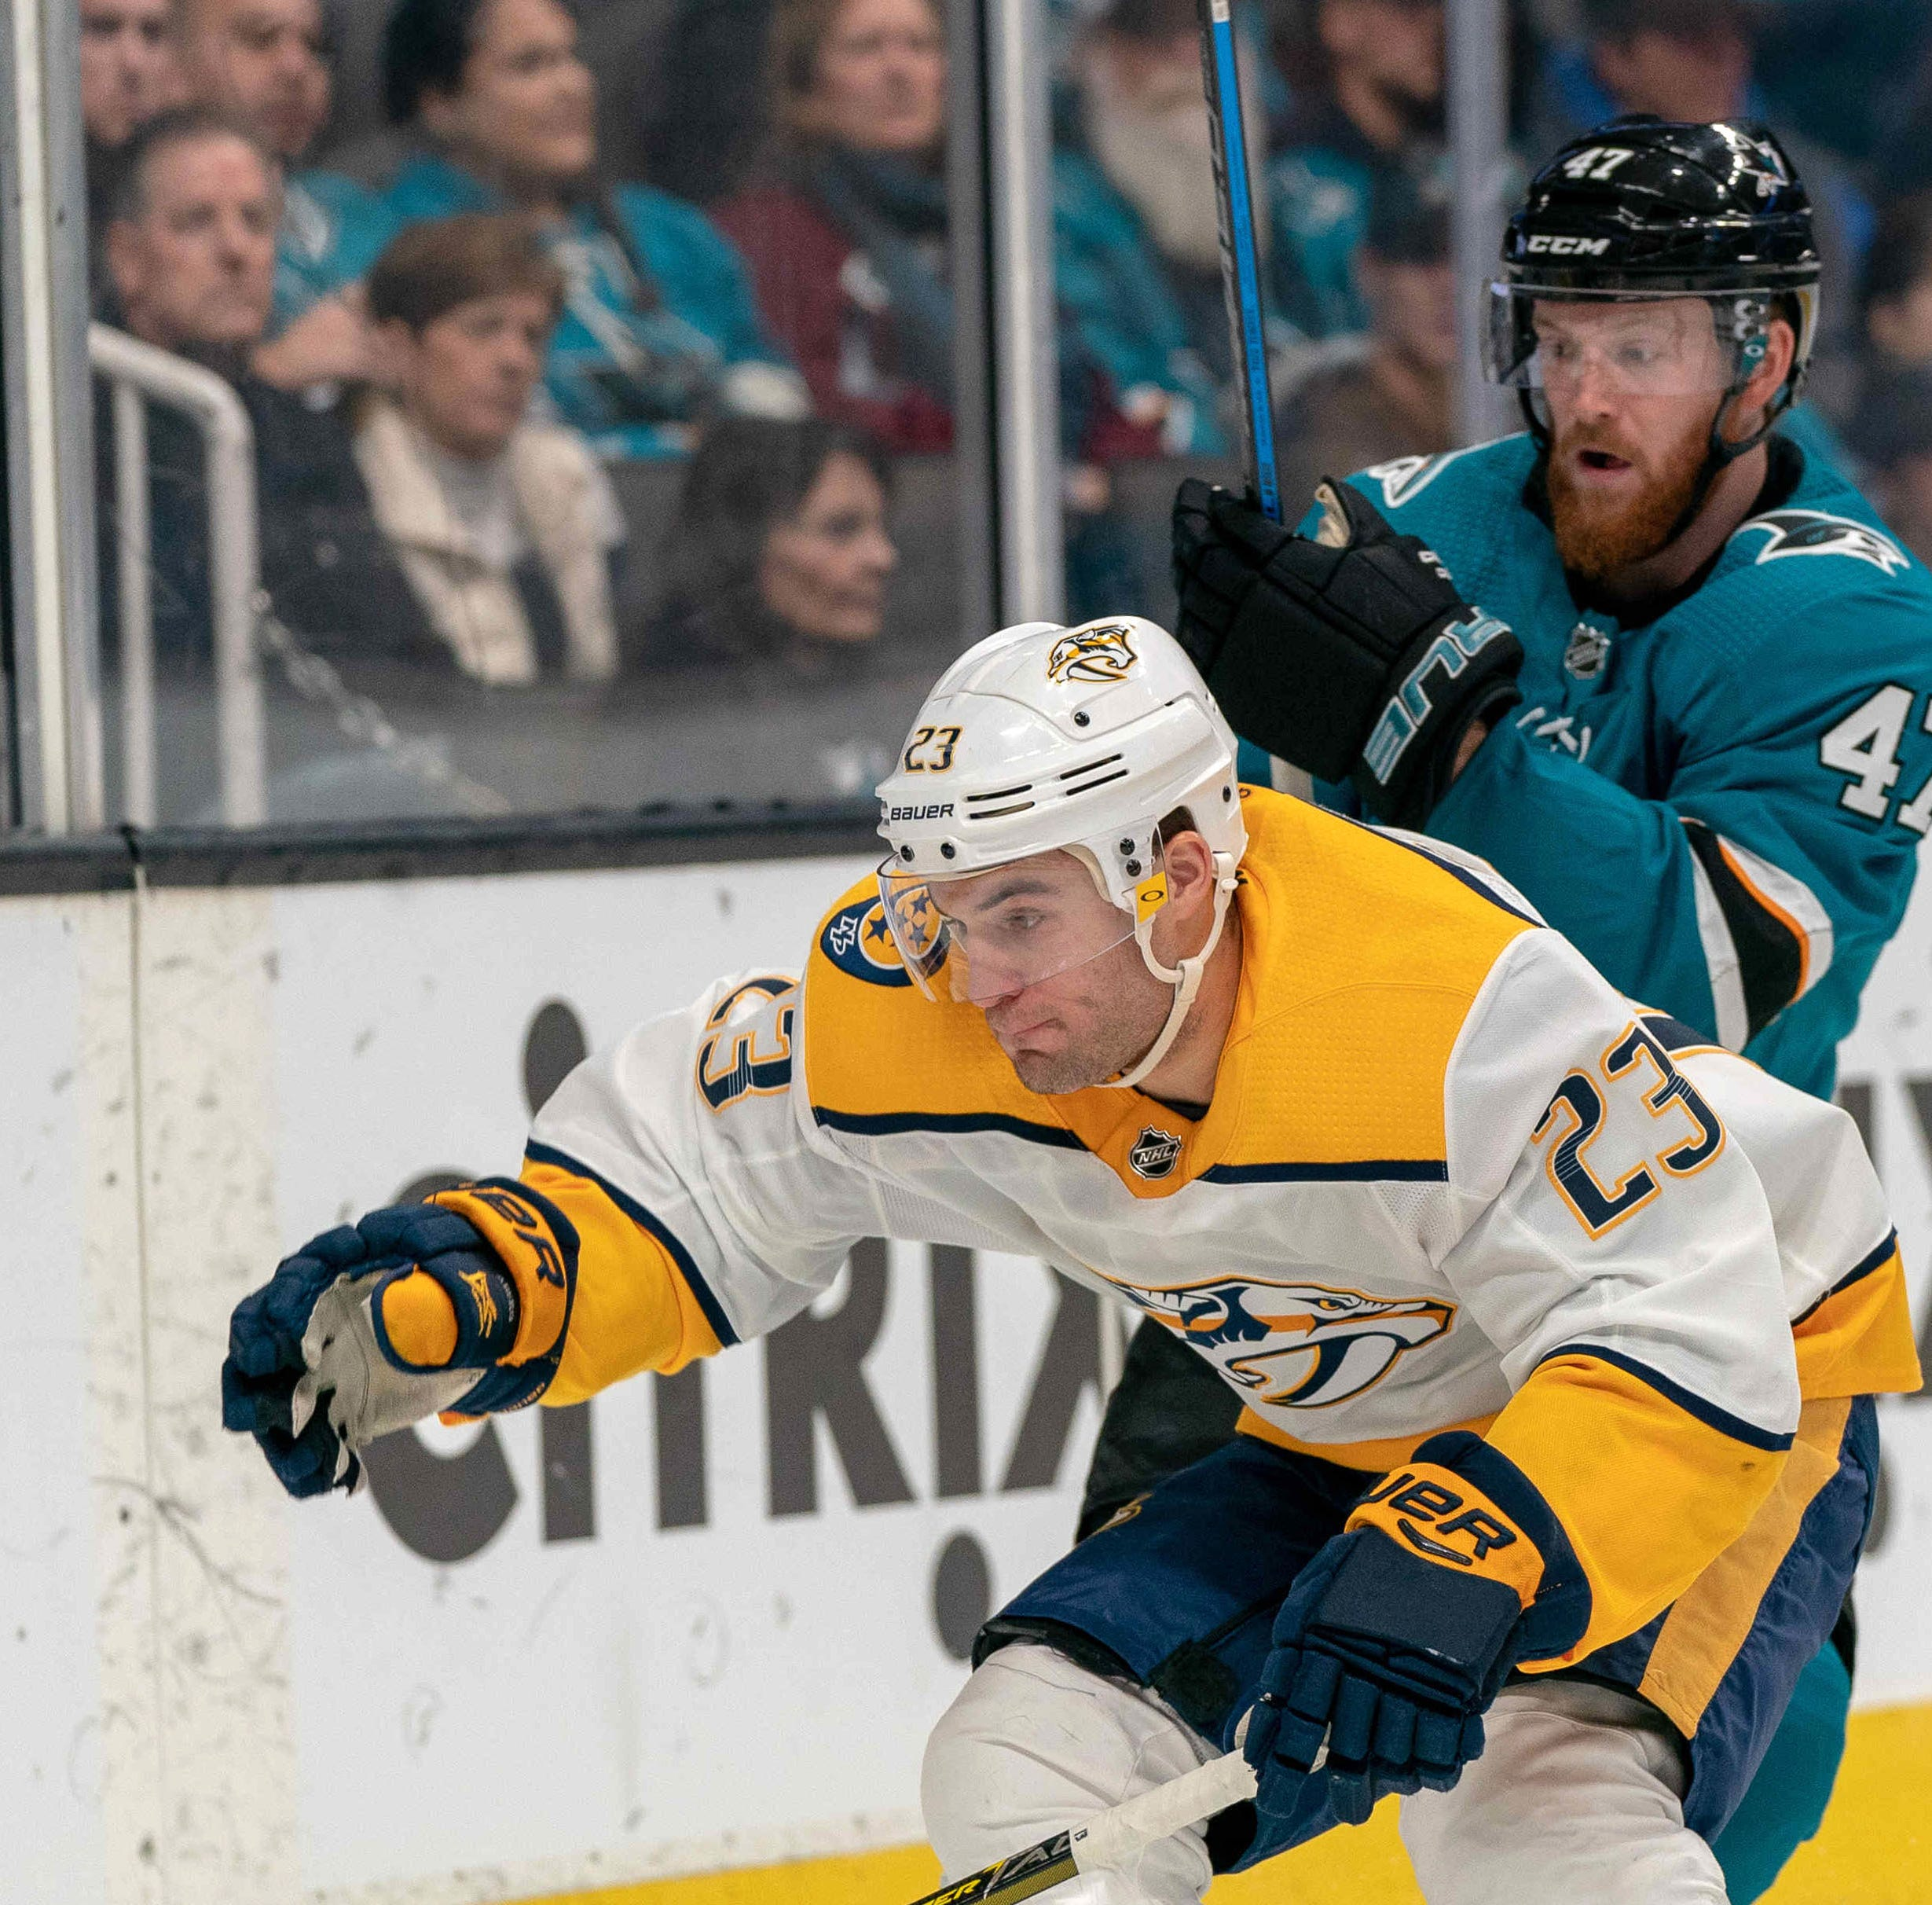 Tuesday's recap: Sharks 5, Predators 4